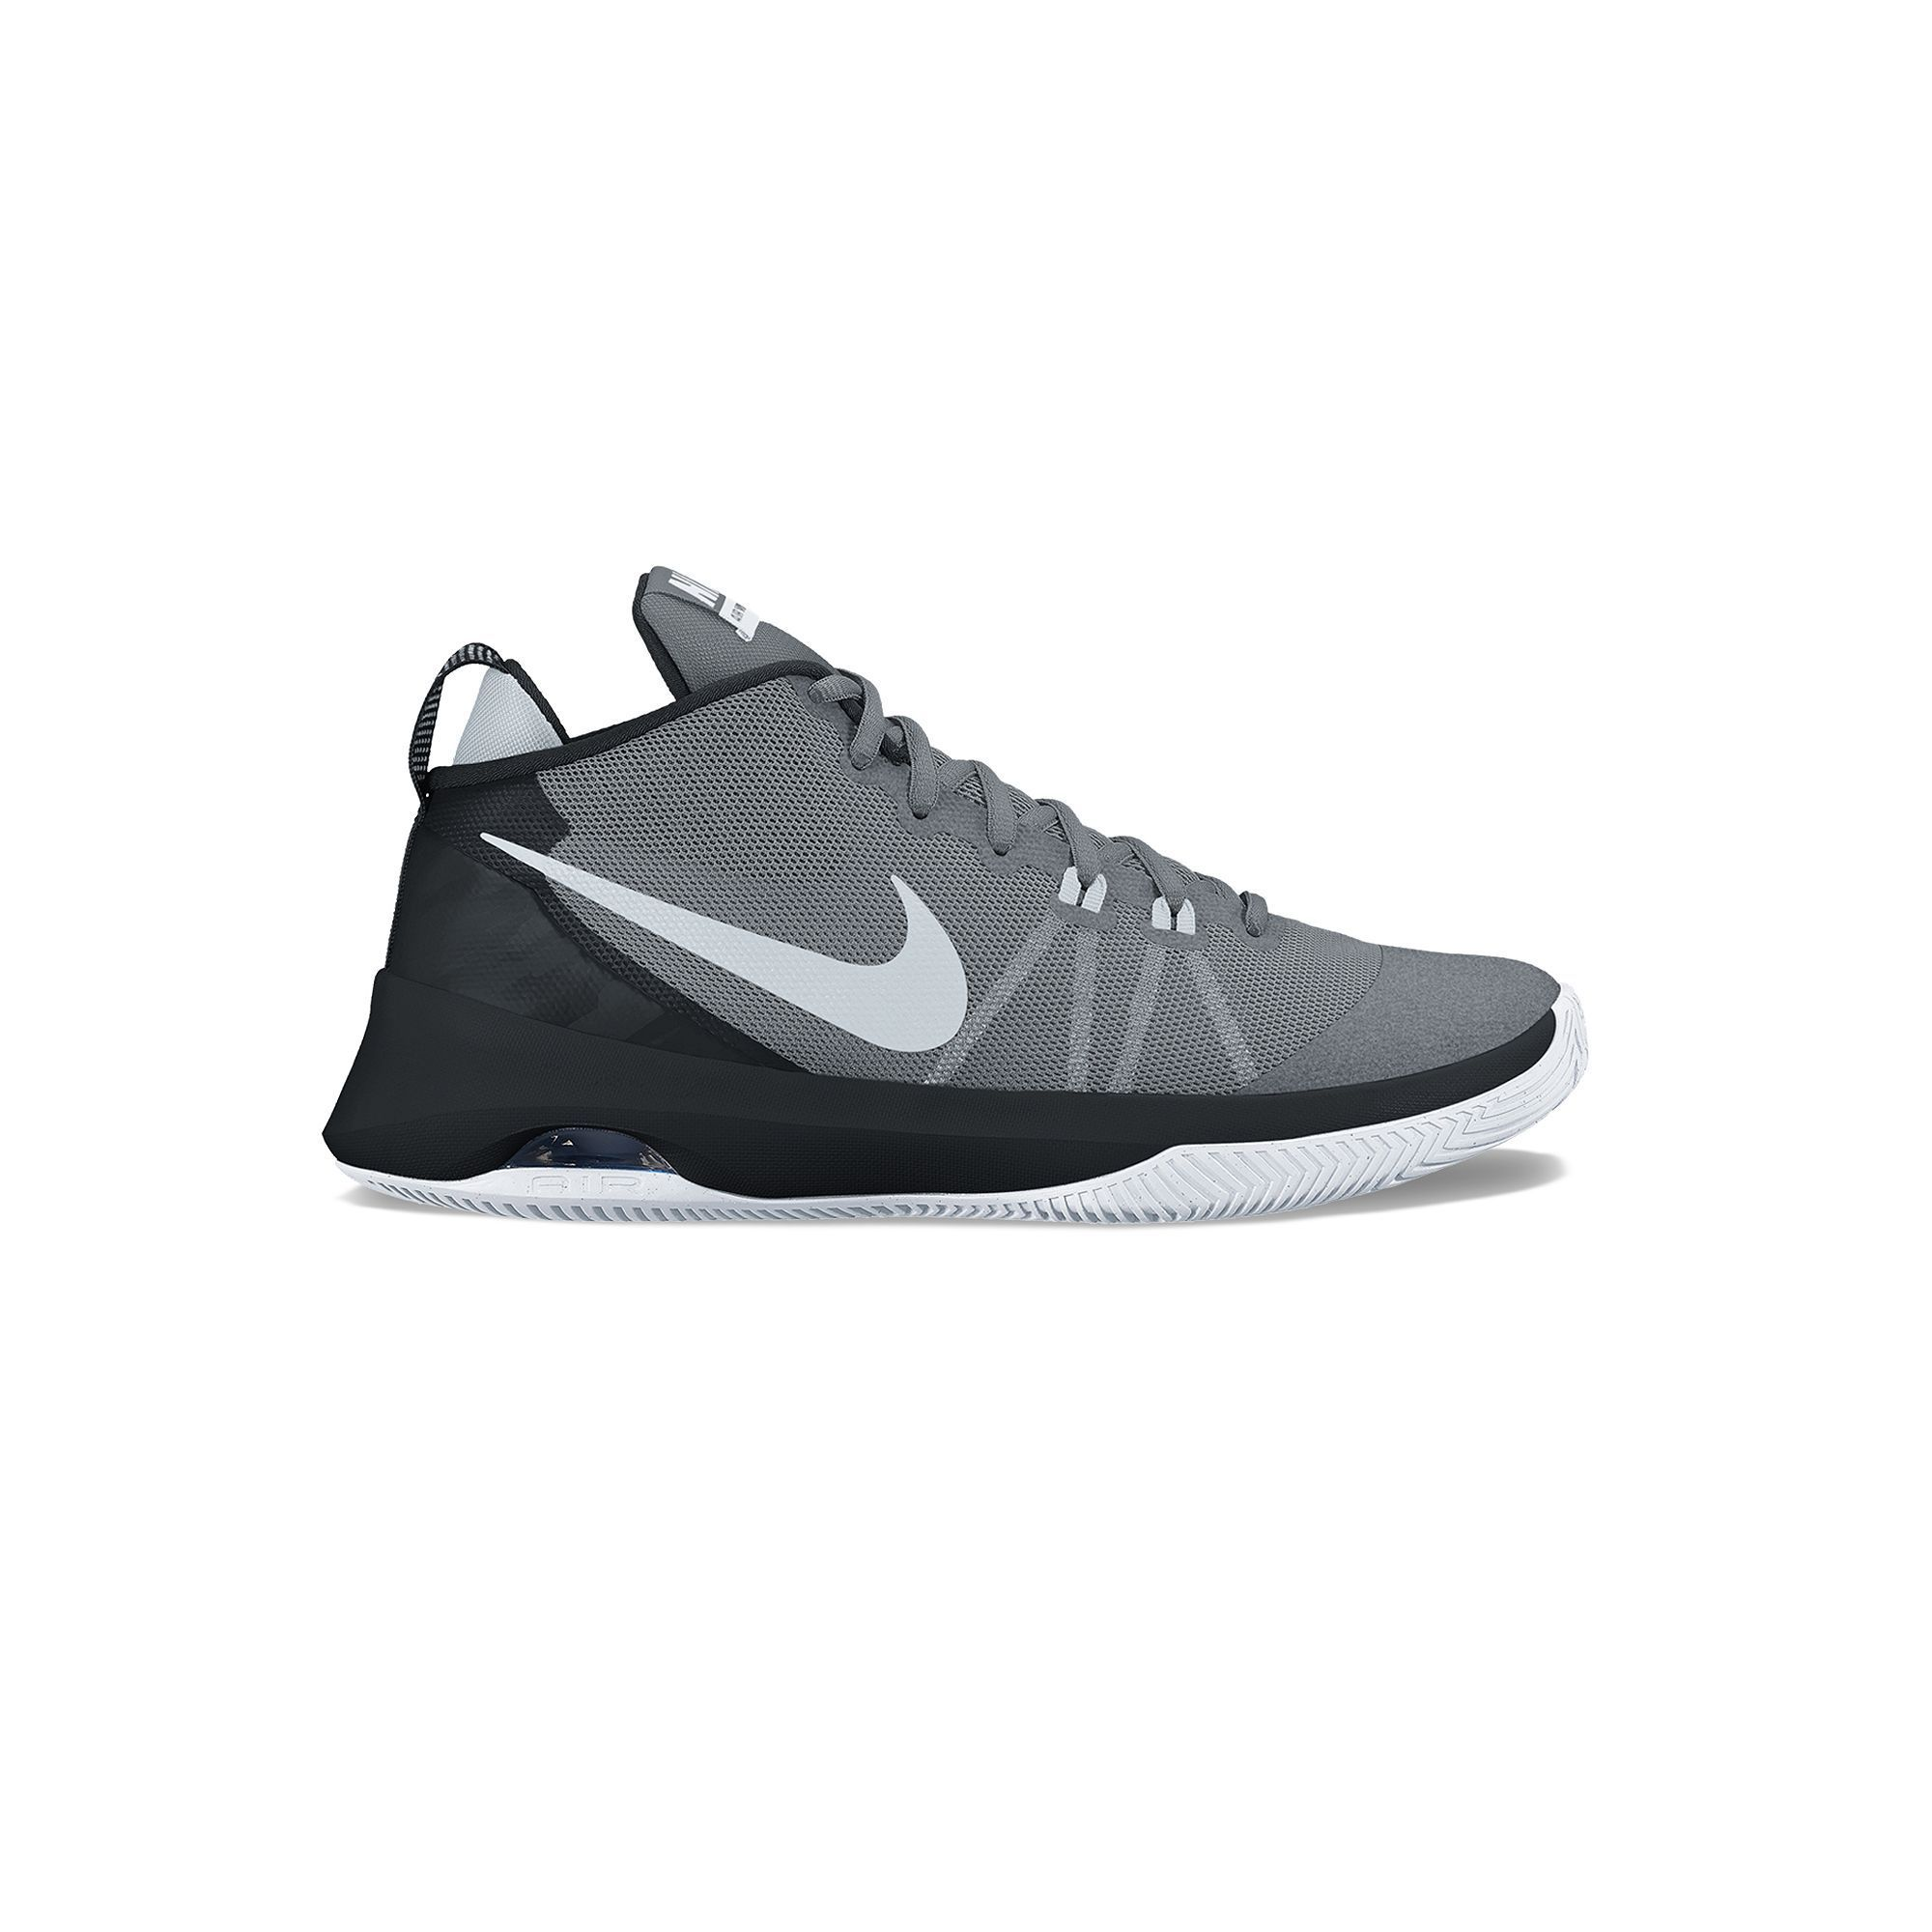 e0caeeff68f77 Nike Air Versitile Men s Basketball Shoes